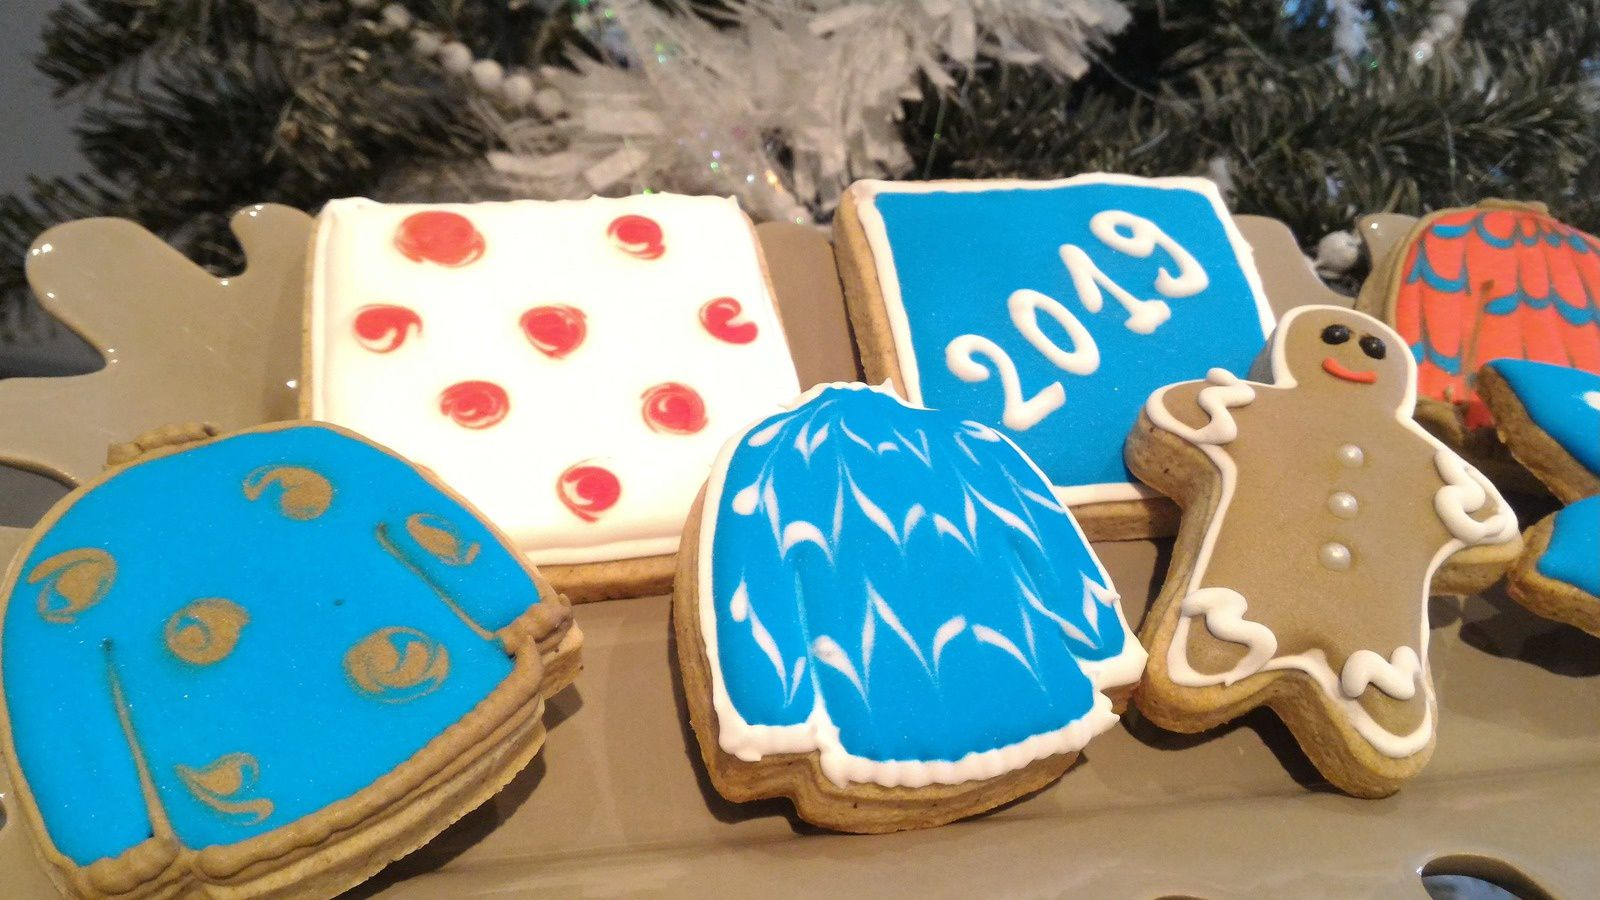 BISCUITS DE NOEL AUX EPICES